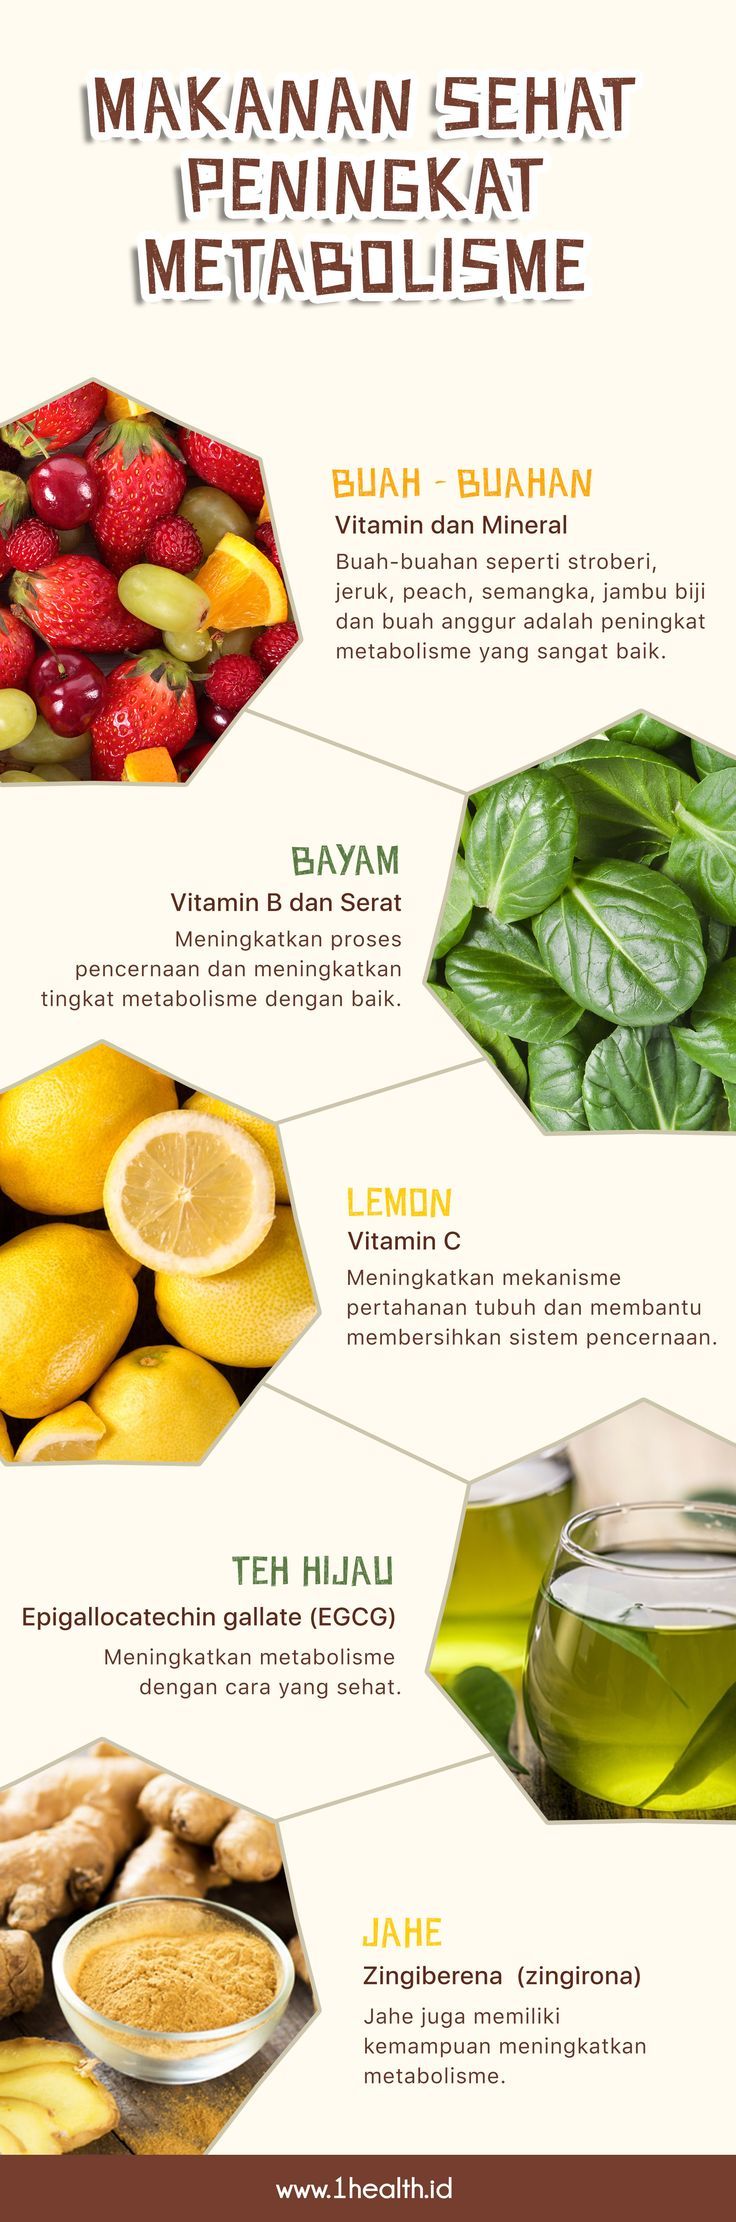 INFOGRAPHIC: Super food for metabolism